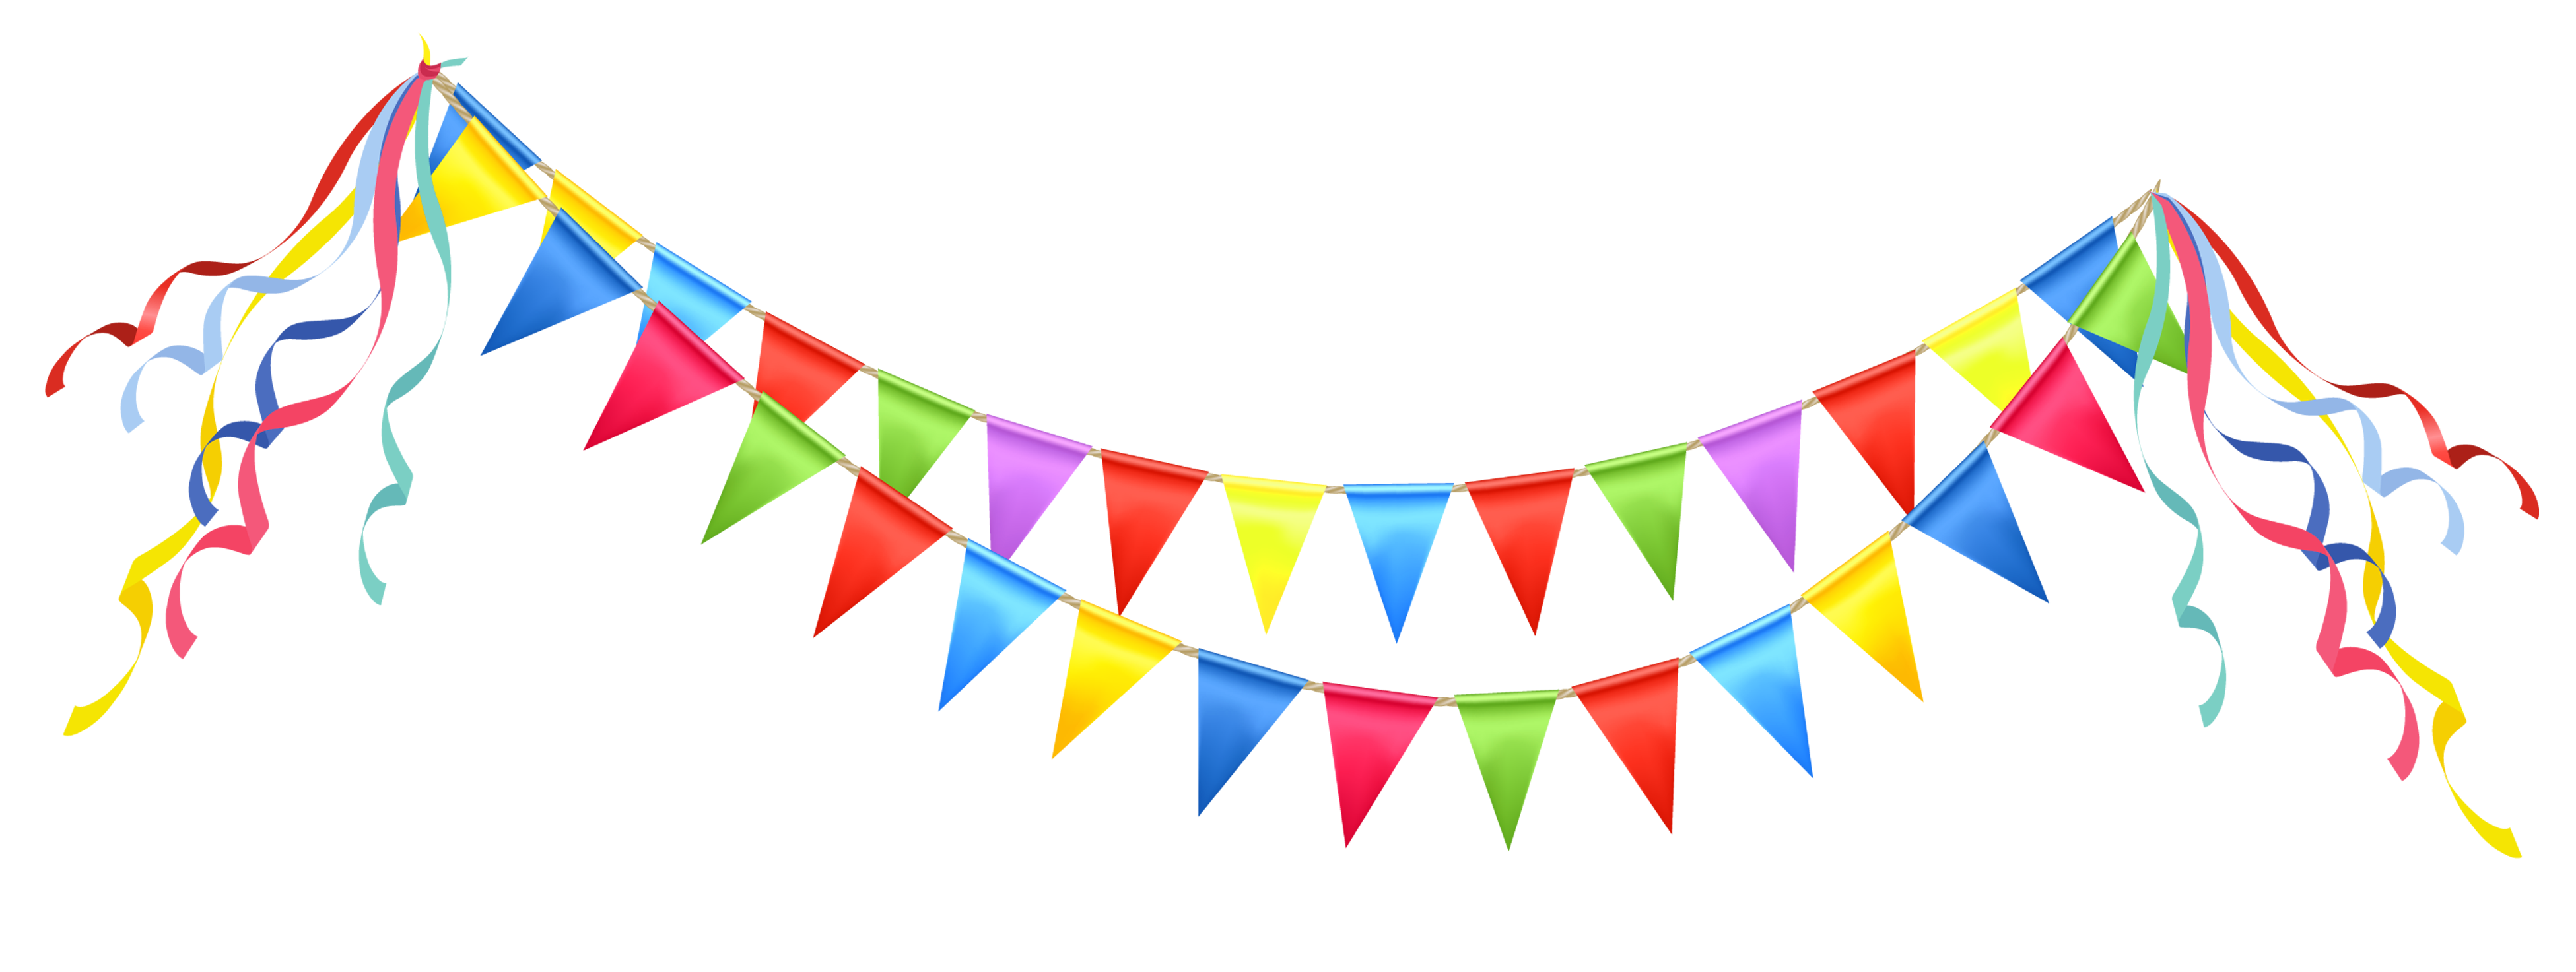 Free clipart party streamers vector free download Free party clipart free clipart graphics images and photos image 4 ... vector free download